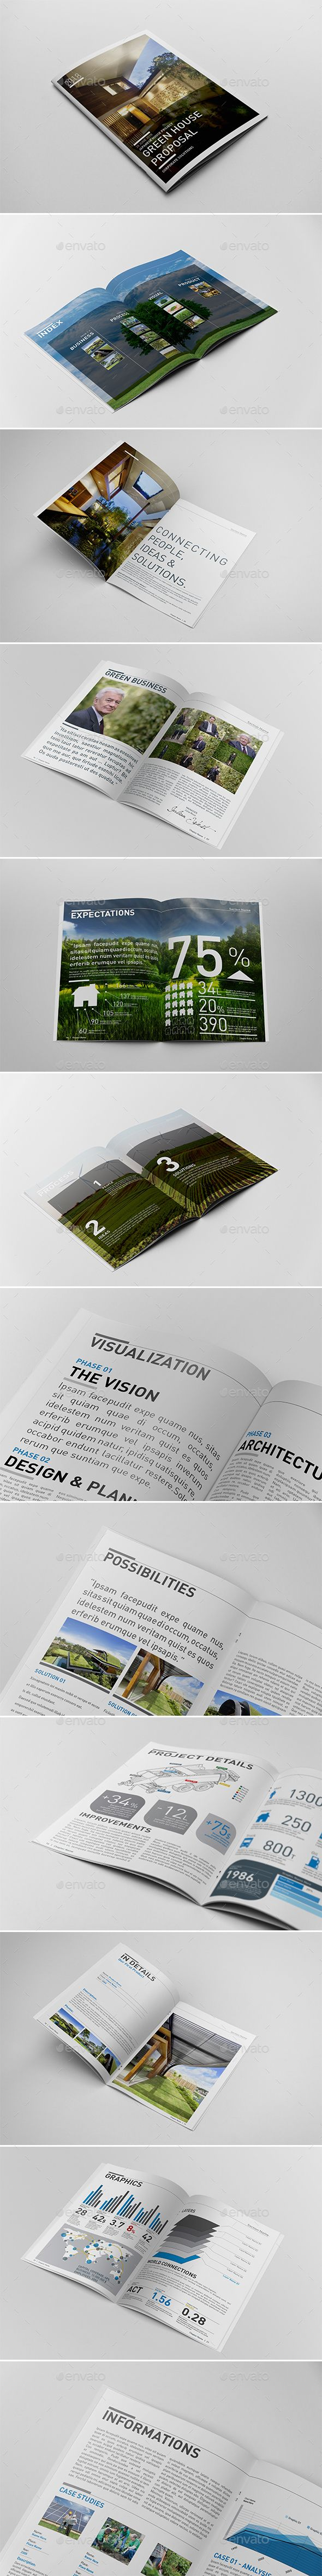 construction proposal templates%0A Annual Report Proposal Template